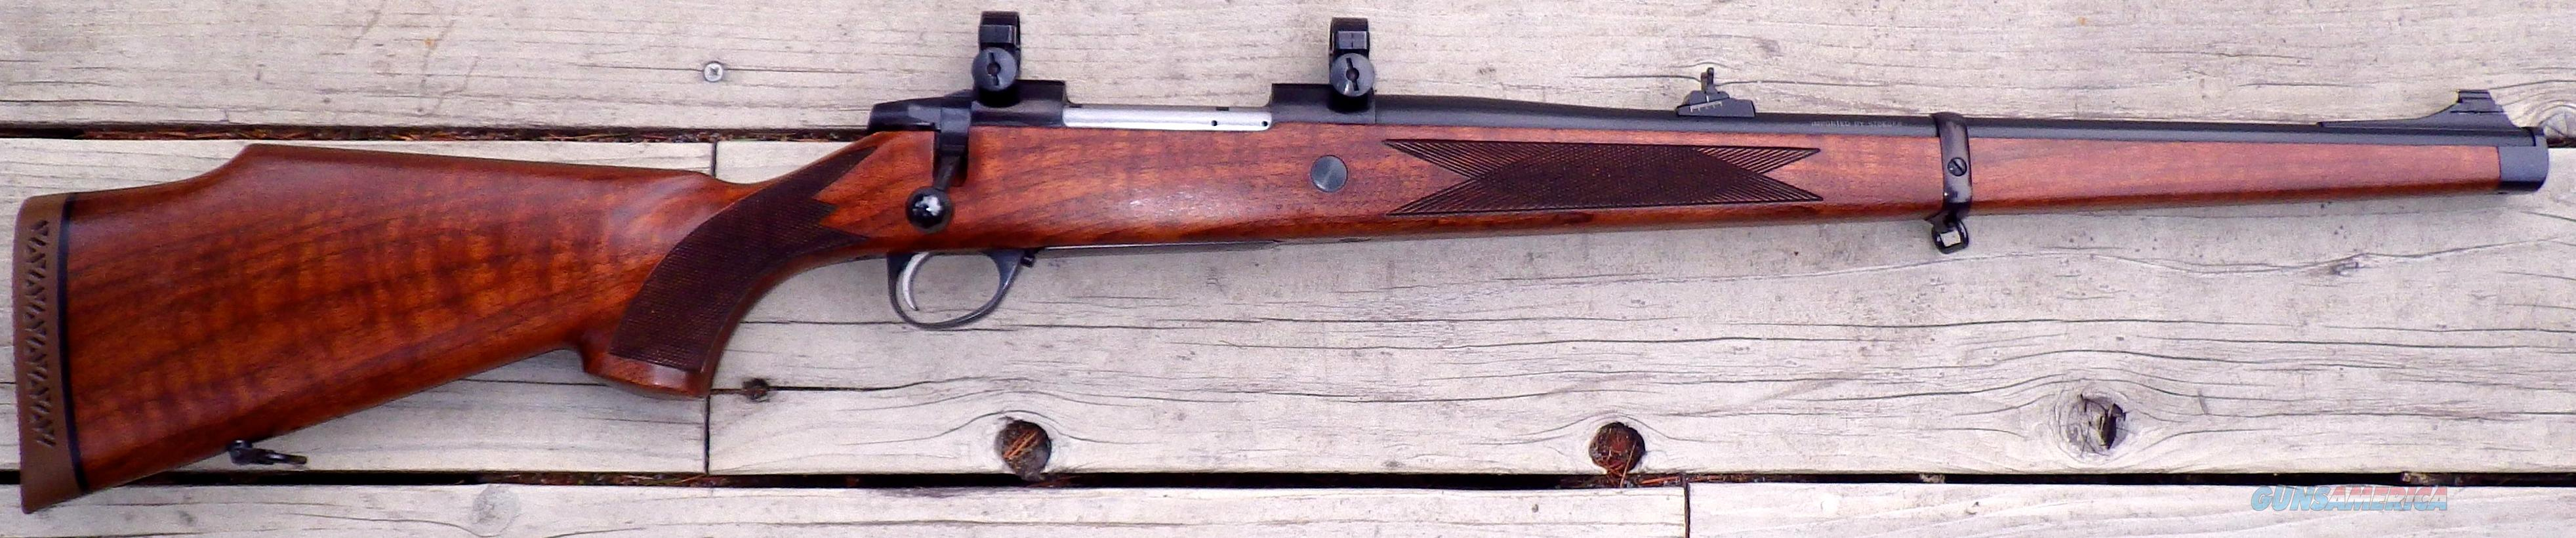 Sako AIII Männlicher .30-06, with rings and open sights, 95%   Guns > Rifles > Sako Rifles > Other Bolt Action